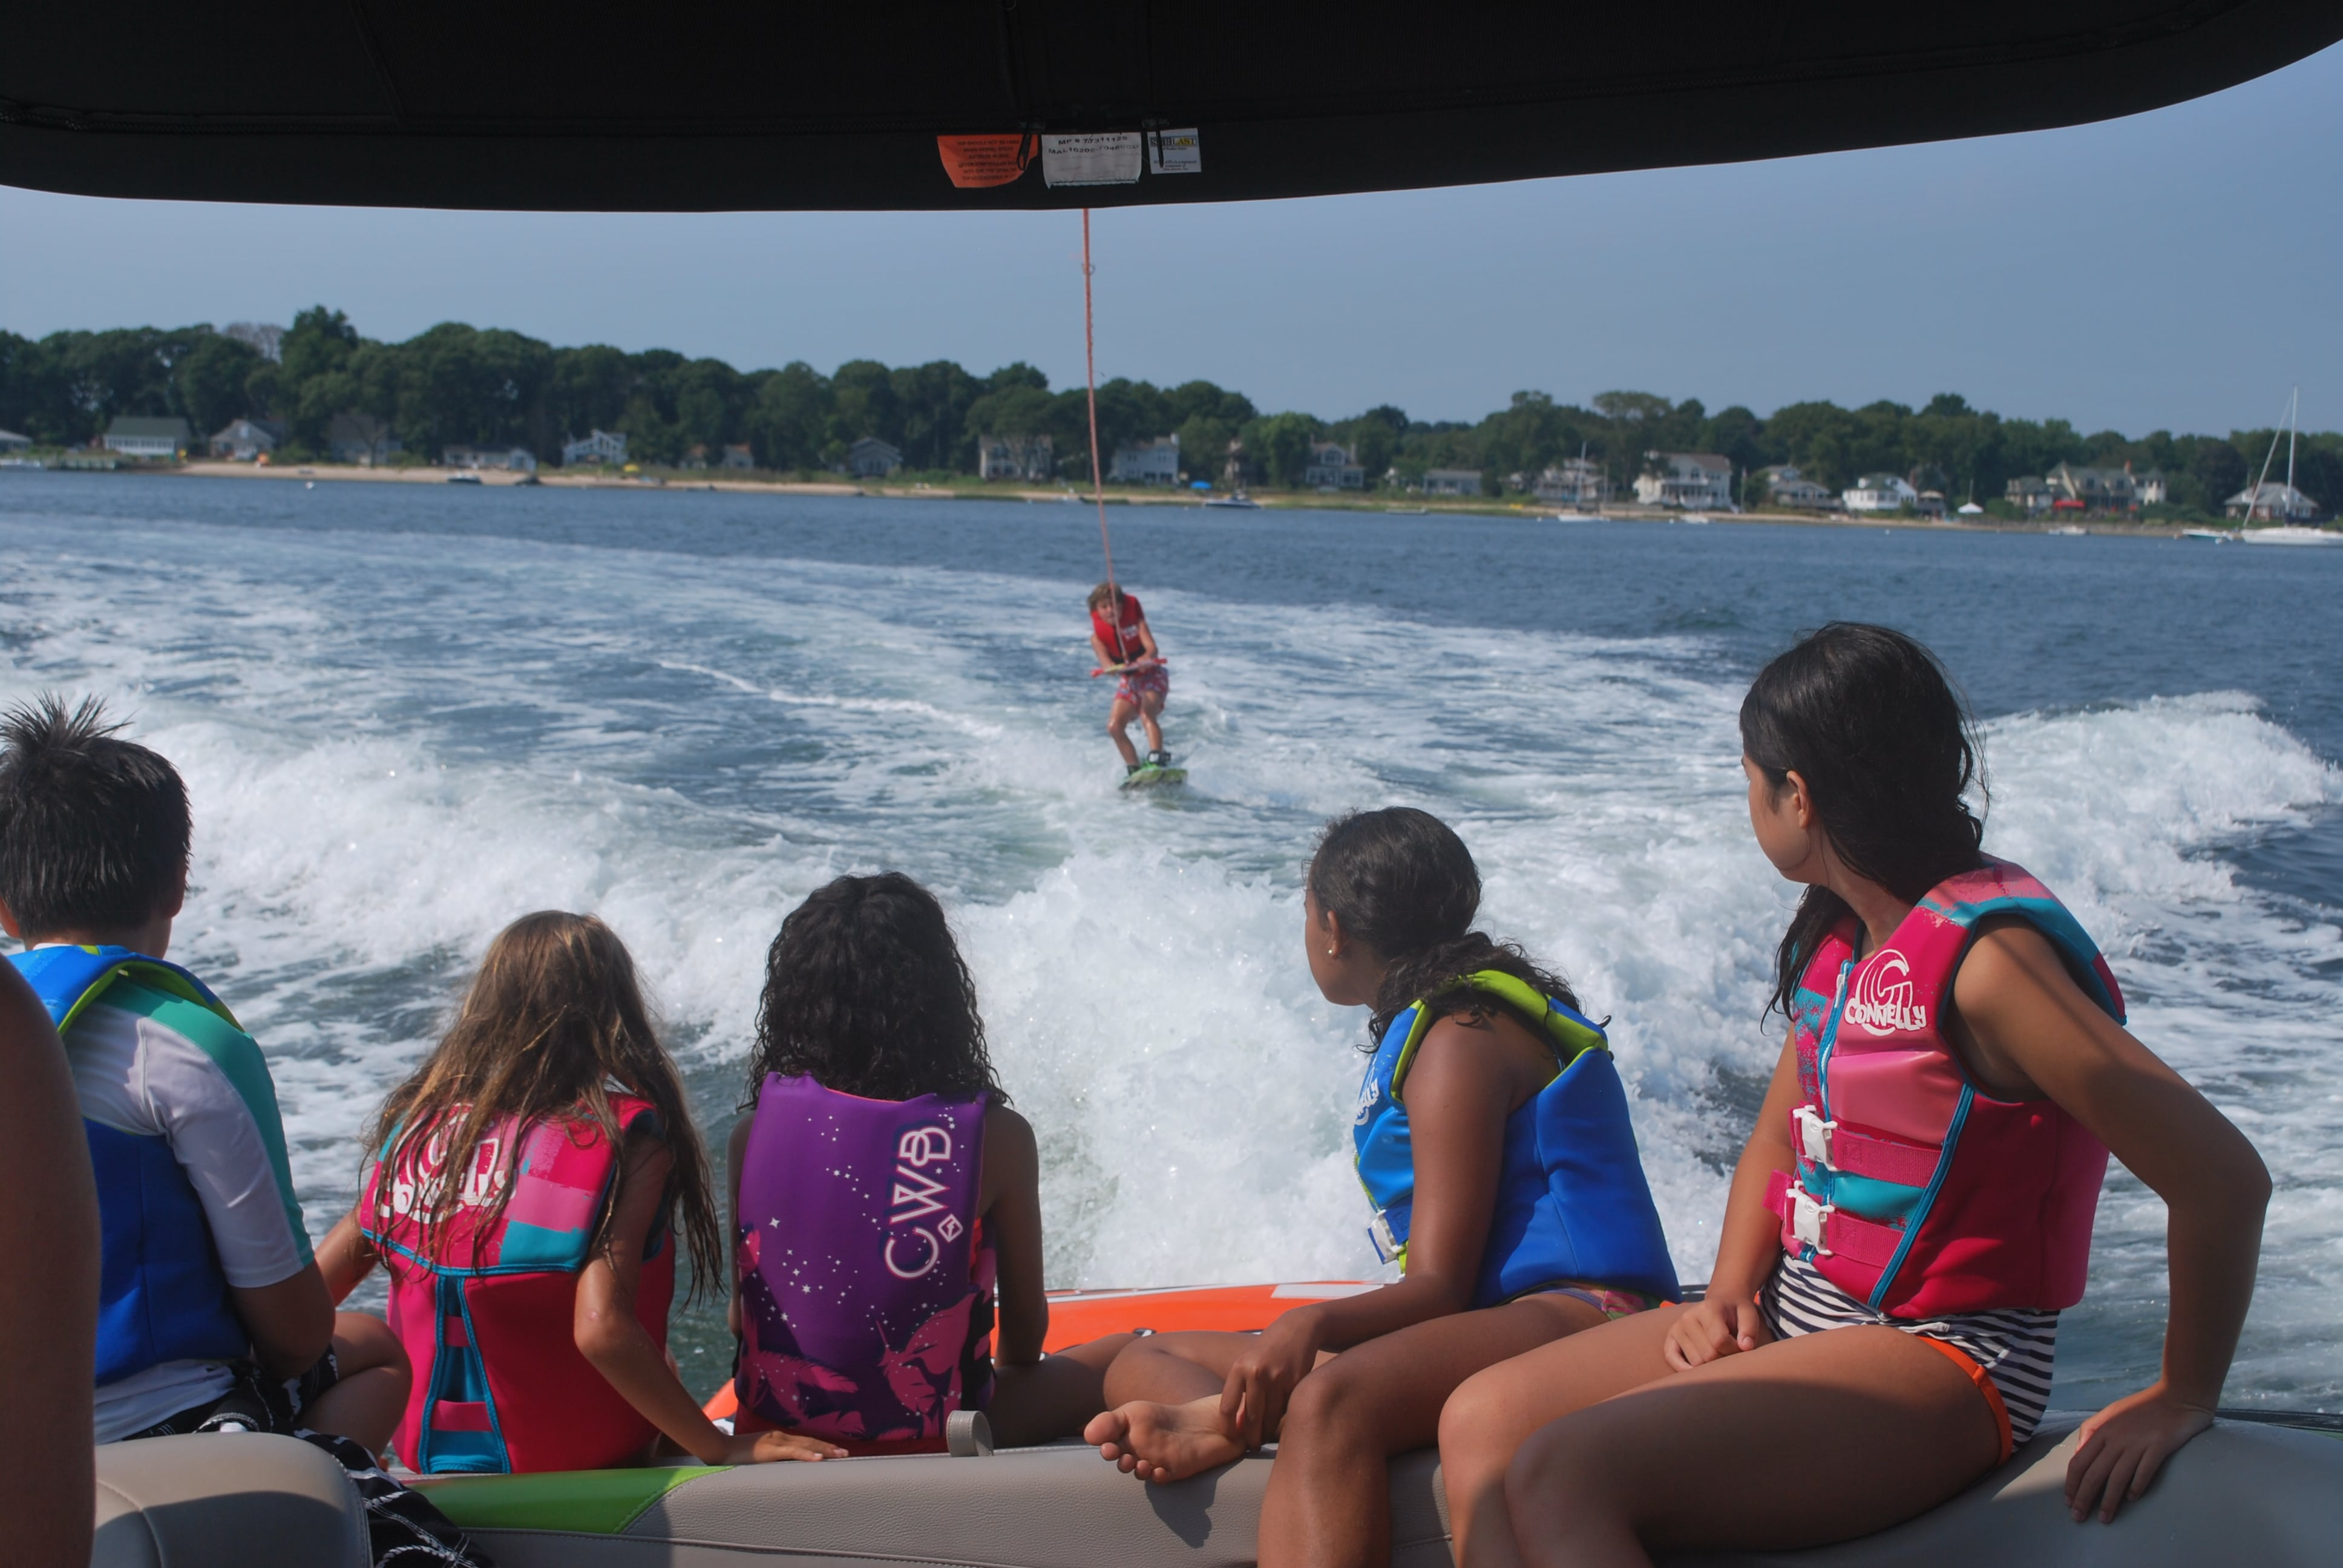 Peconic Water Sports Kids Wakeboarding and Wakesurfing Camp in the Hamptons near Sag Harbor, Long Island, New York